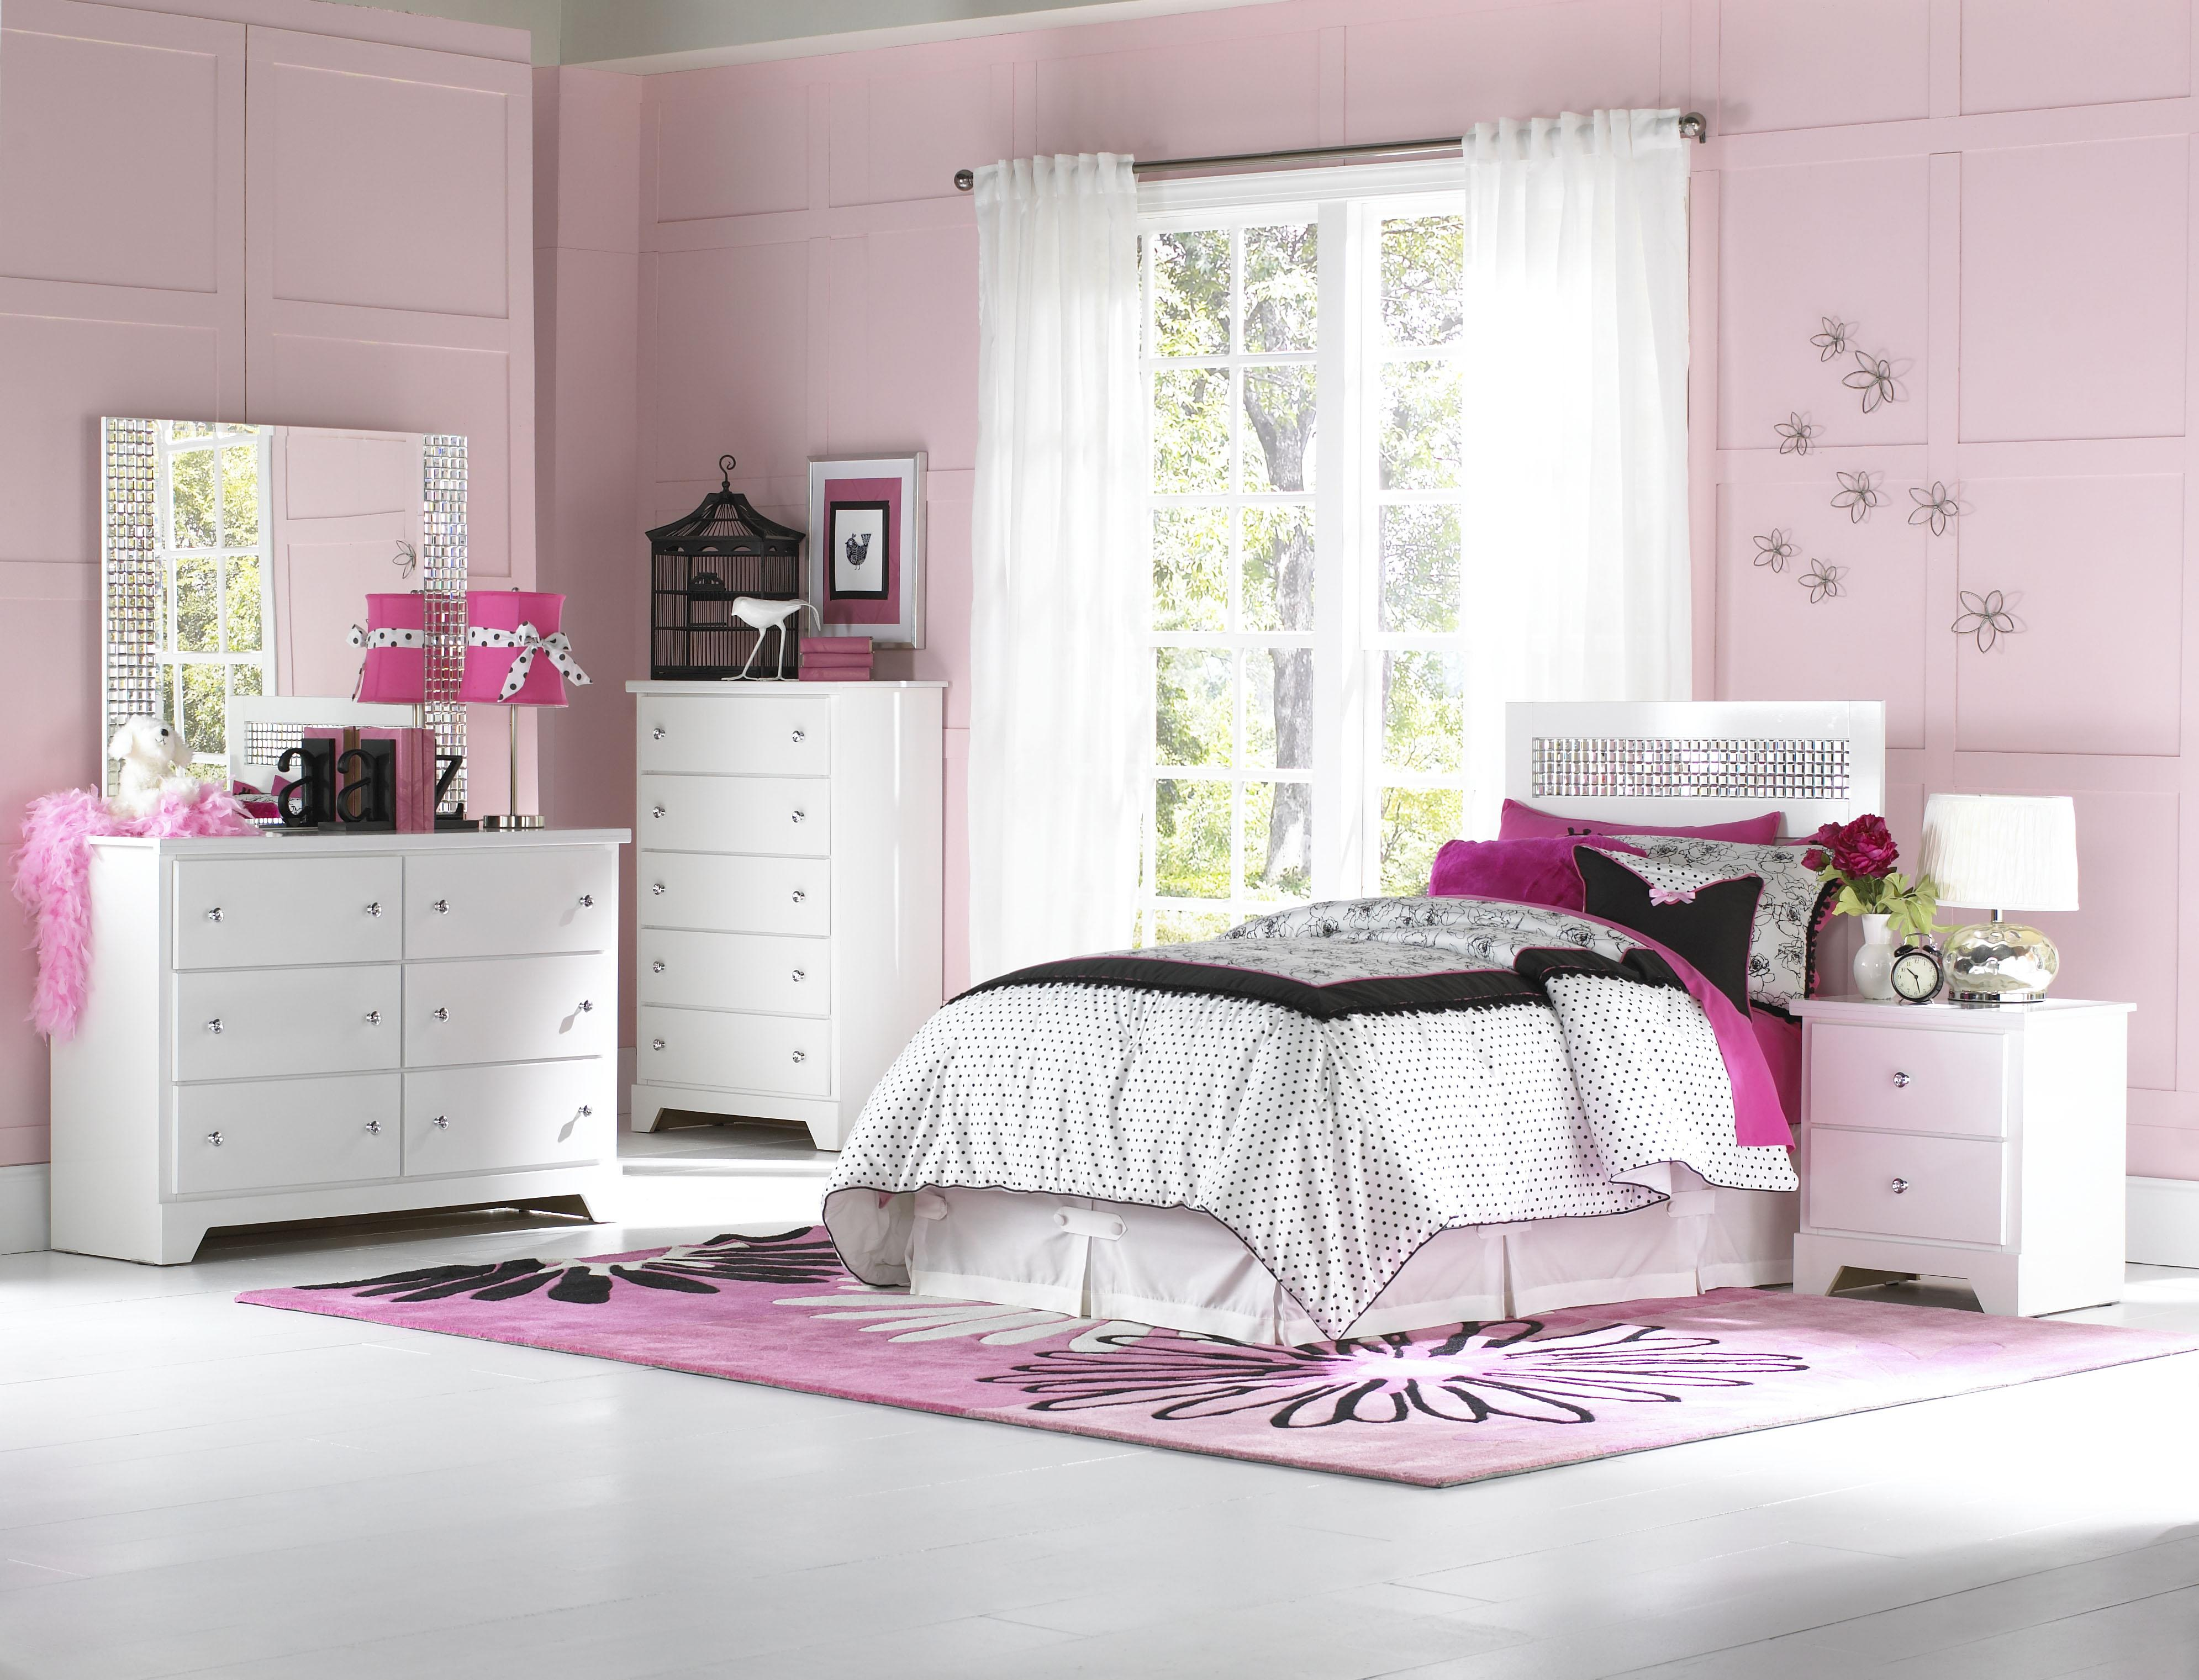 Standard Furniture Marilyn Youth Full Bedroom Group - Item Number: 663 F Bedroom Group 1